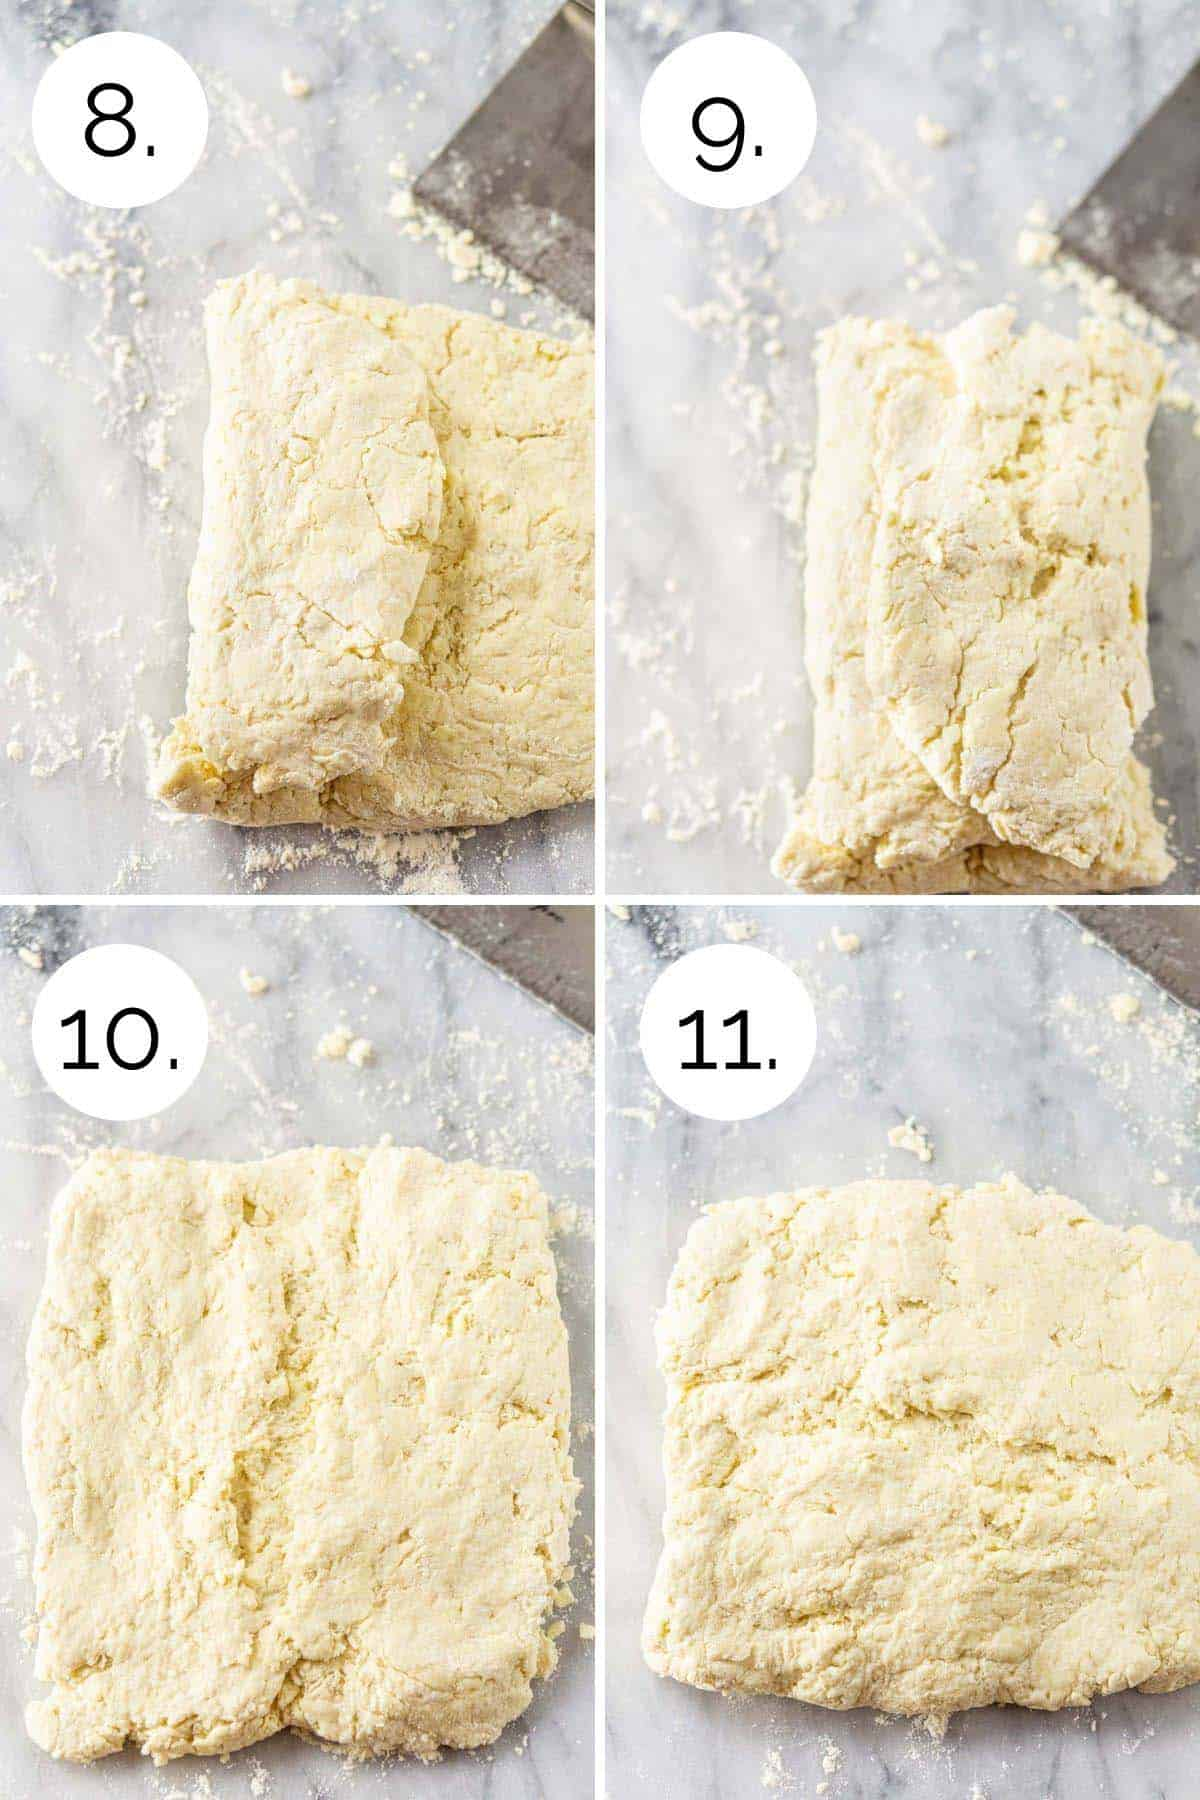 Showing the process of folding the biscuit dough on a pastry board.